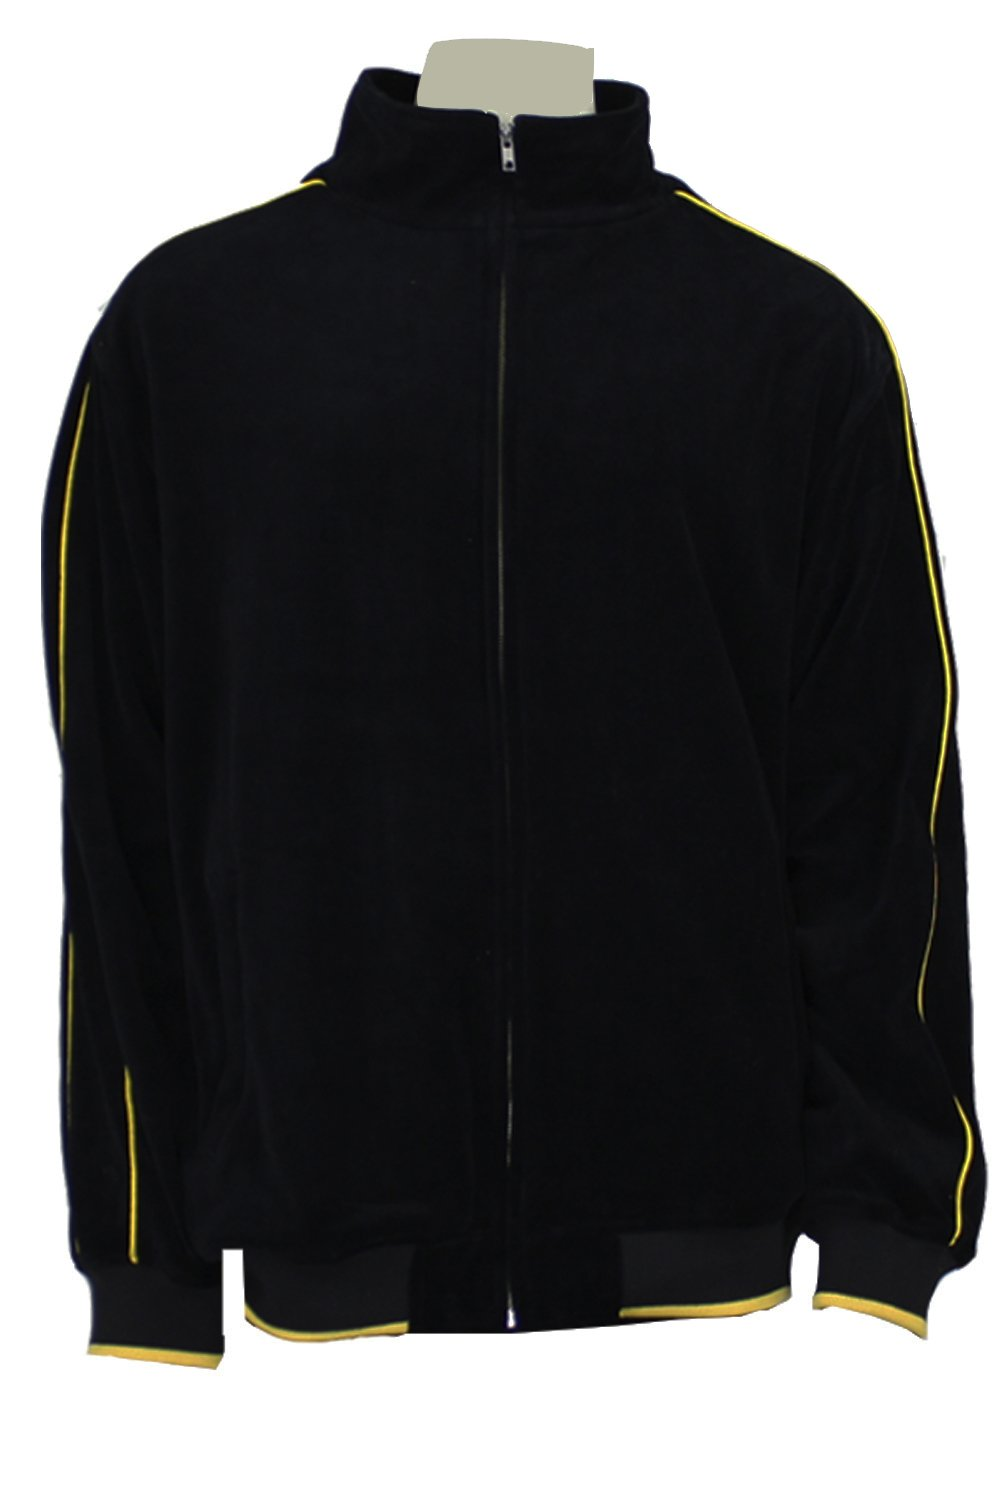 Mens Black Velour Tracksuit with Yellow Piping (Large) by Sweatsedo (Image #3)